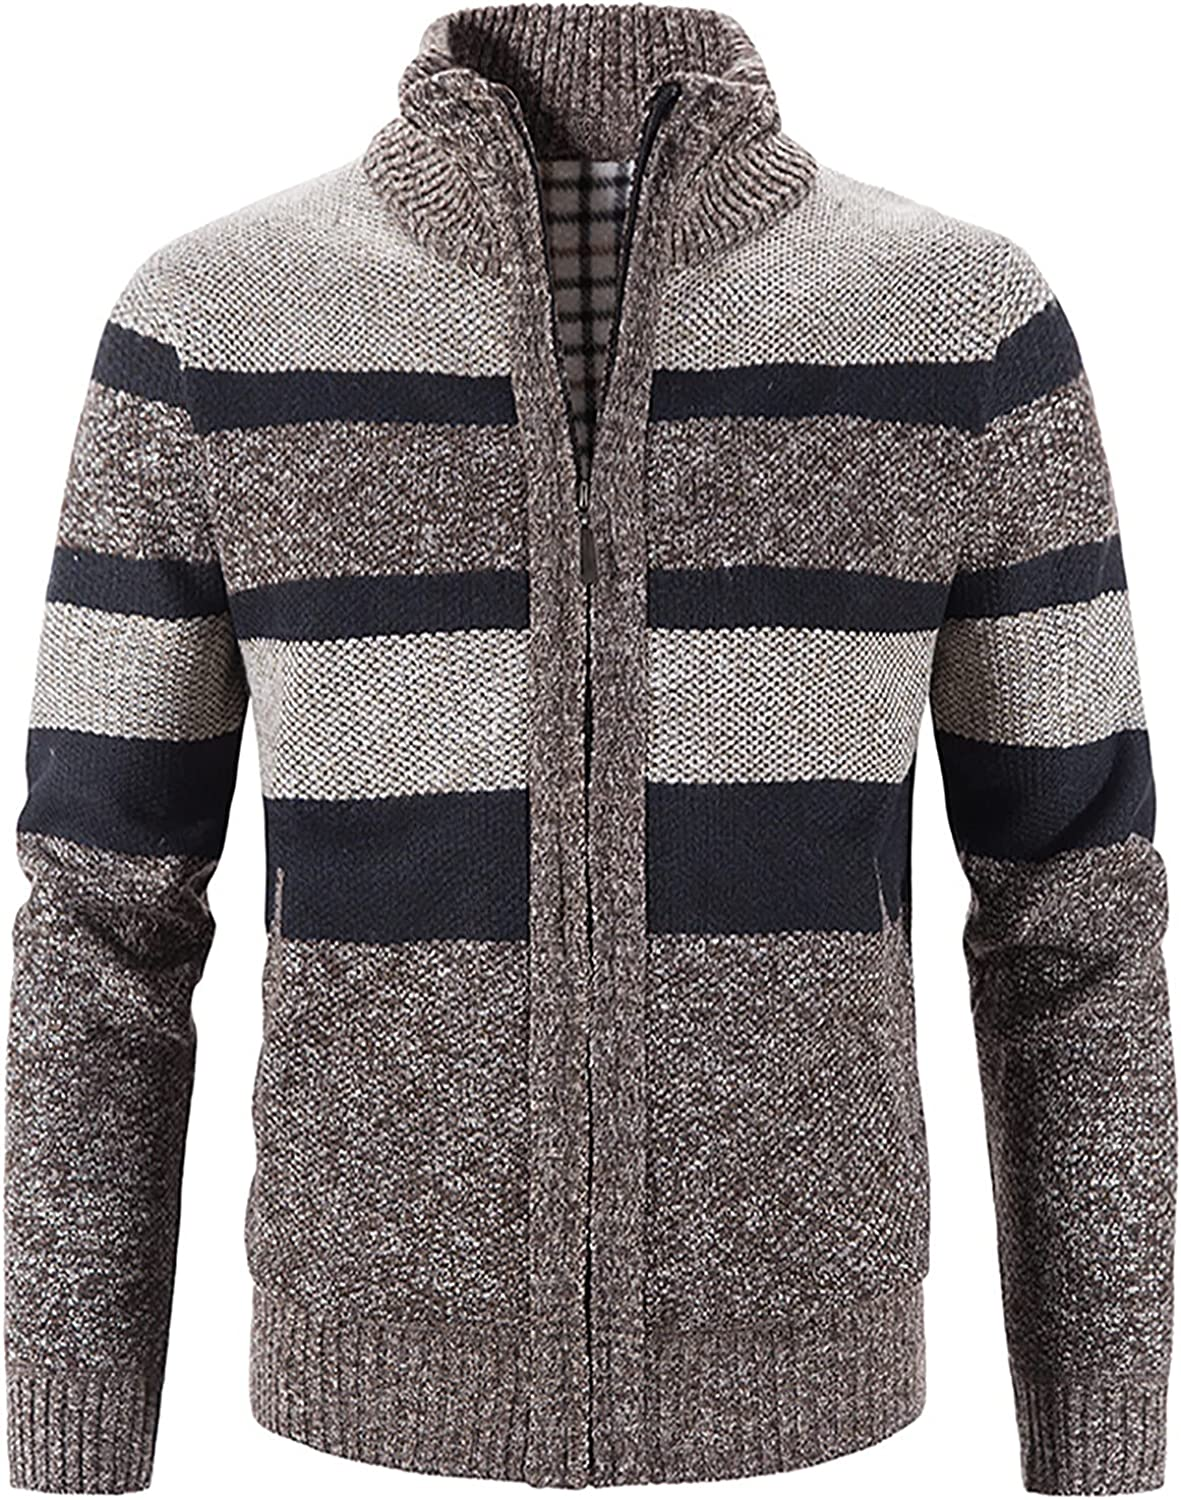 Men 's Knitted Sweater Cardigan Casual Solid Long Sleeve Zipped Coat Winter Fashion Slim Jacket Outwear